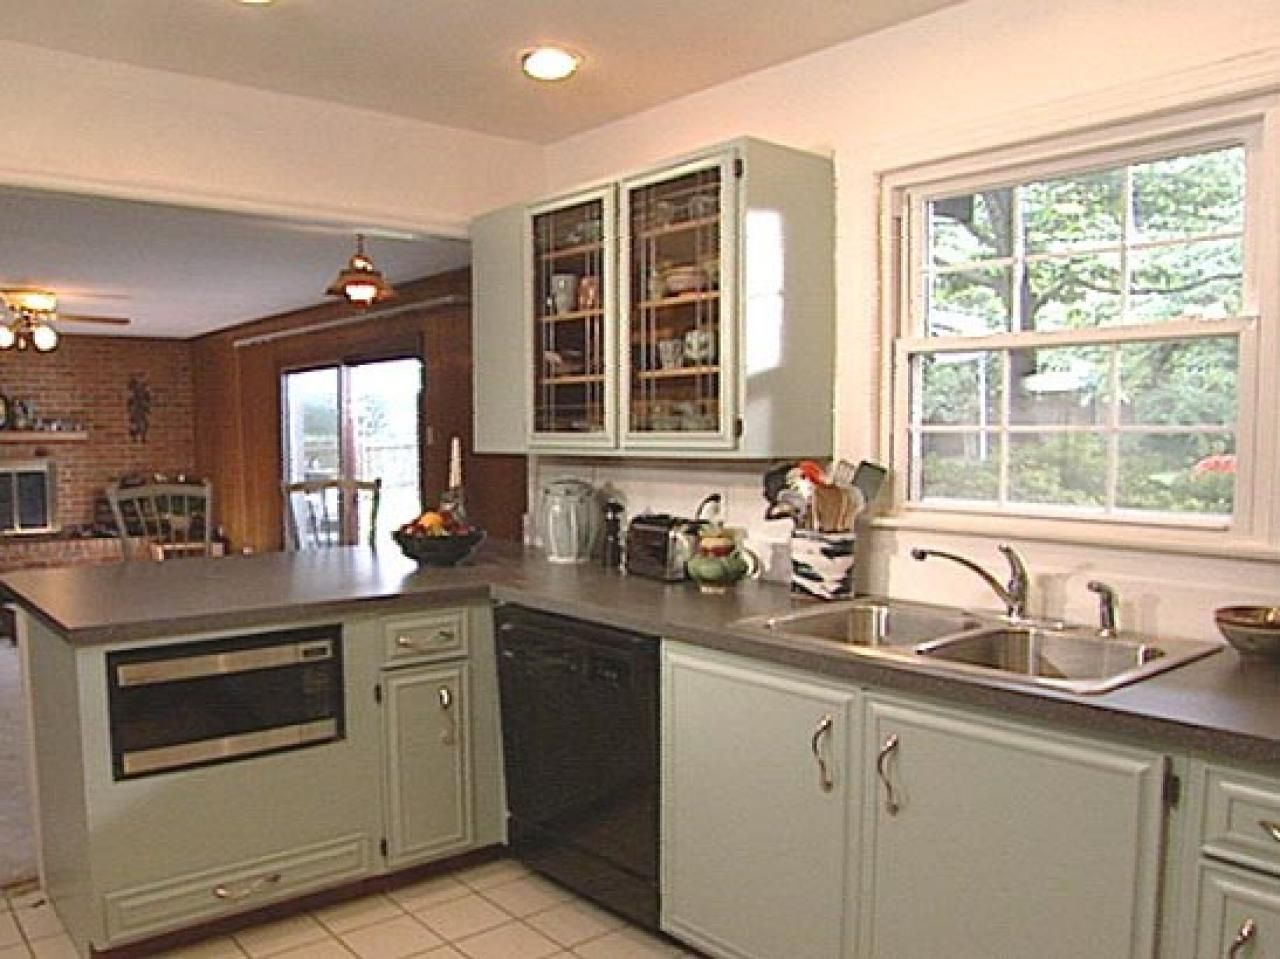 painting existing kitchen cabinets home renovation ideas